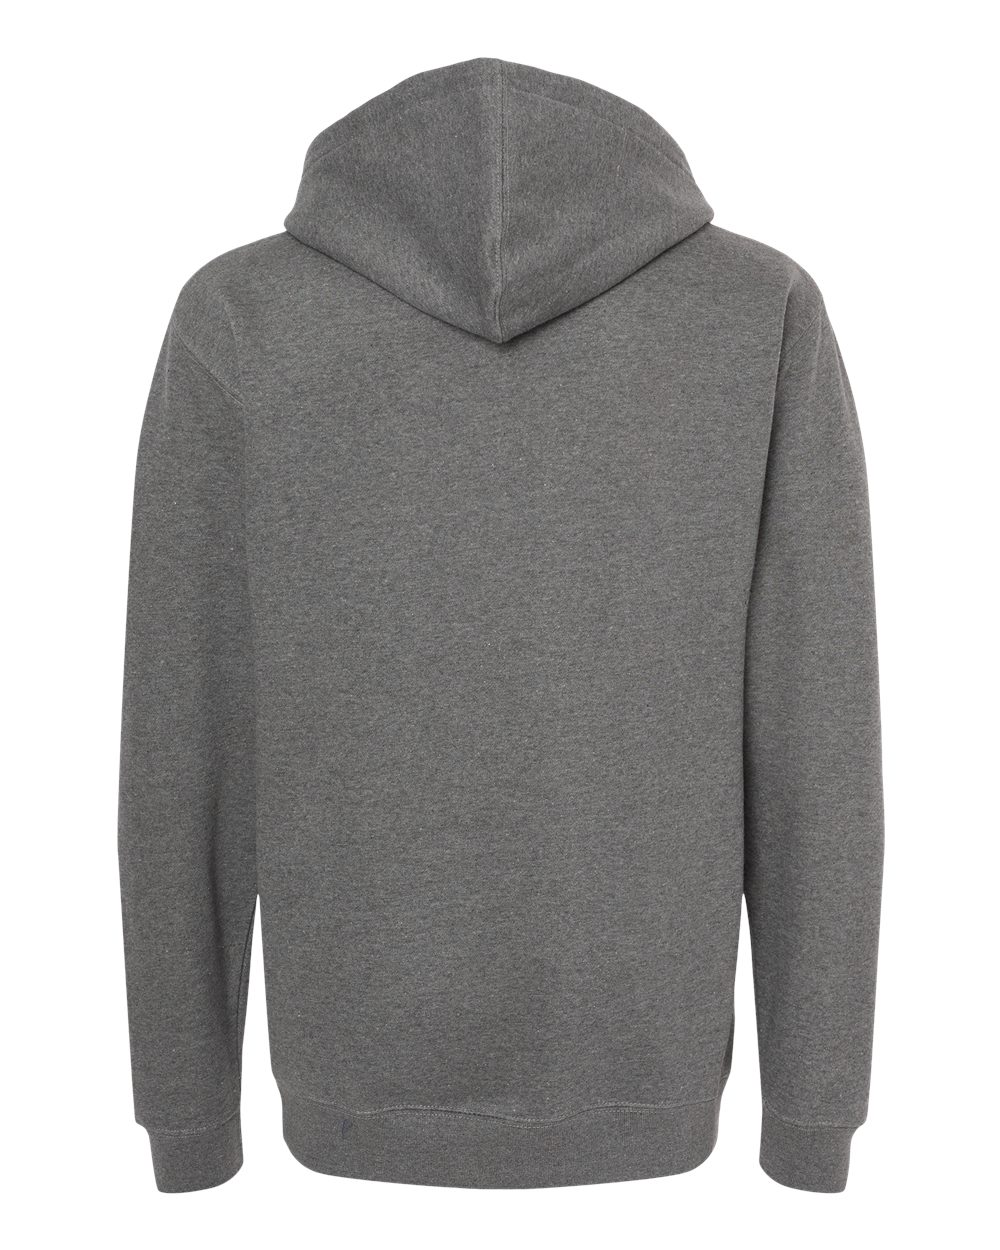 Independent-Trading-Co-Mens-Hooded-Pullover-Sweatshirt-IND4000-up-to-3XL miniature 46